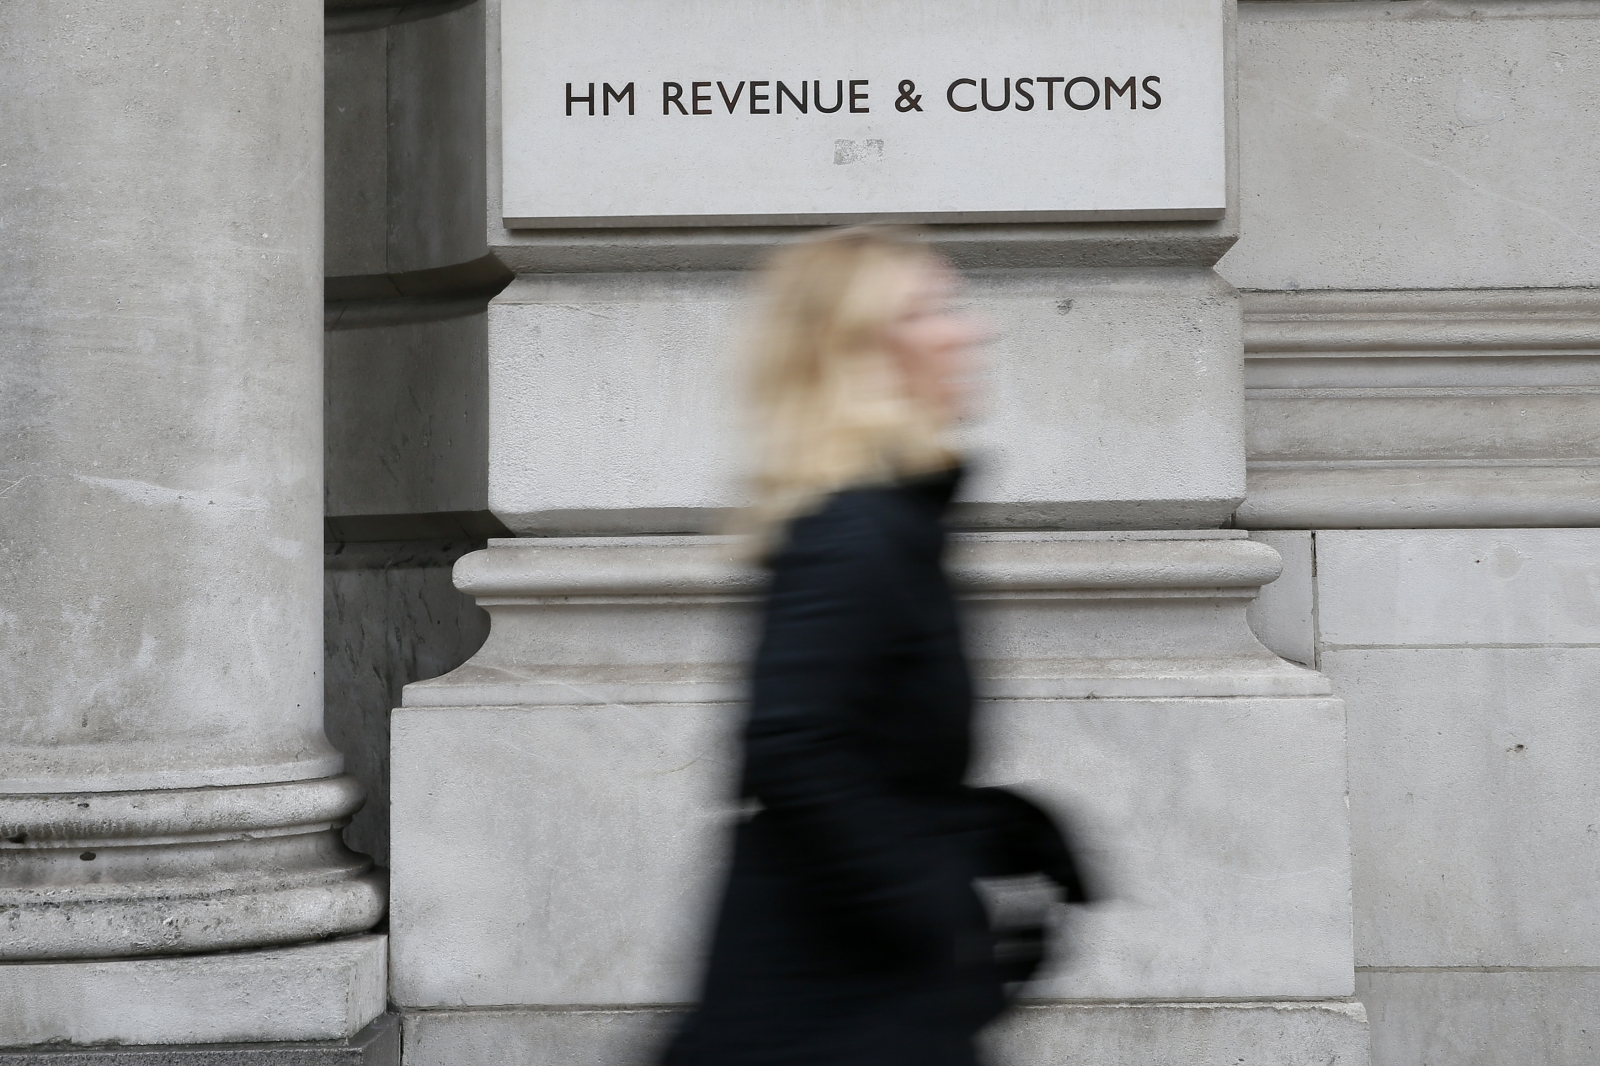 HMRC plans to enforce tougher penalties for accountants and advisers who help their clients dodge taxes